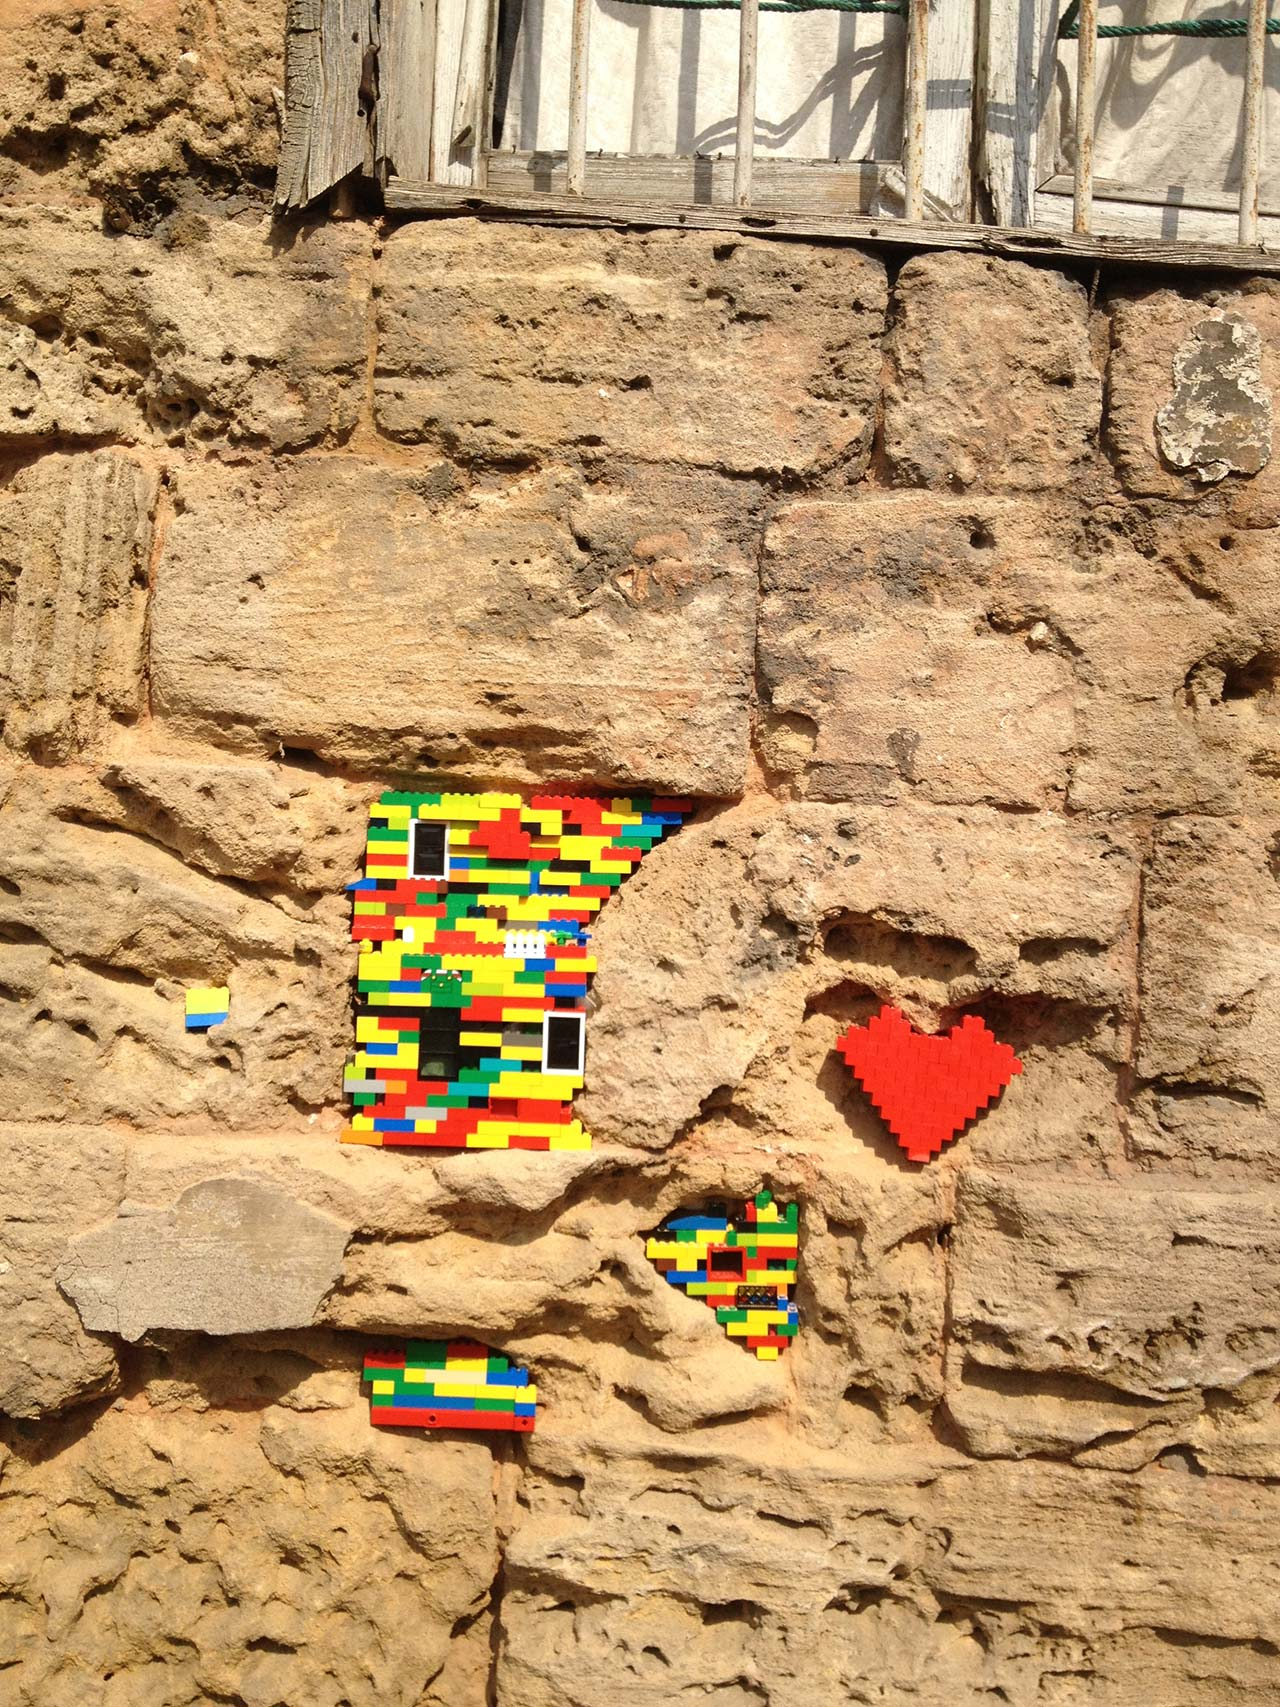 Little Bricks, Big Message by Dispatch Beirut whose work was part of the public interventions at Jeanne d'Arc Street.